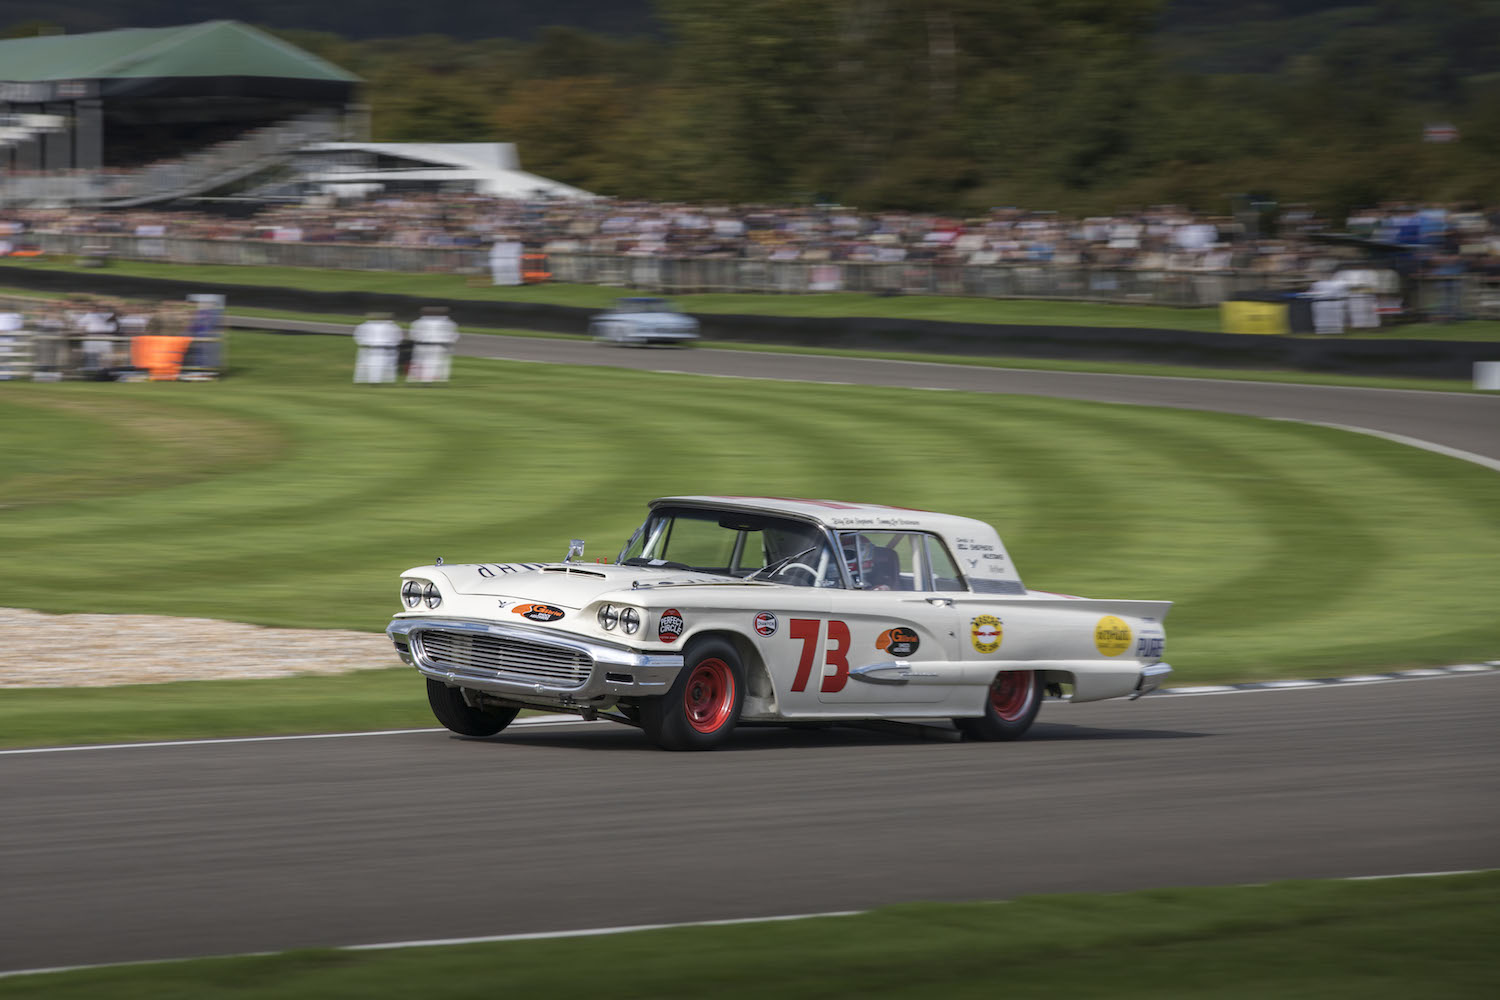 goodwood revival thunderbird racecar